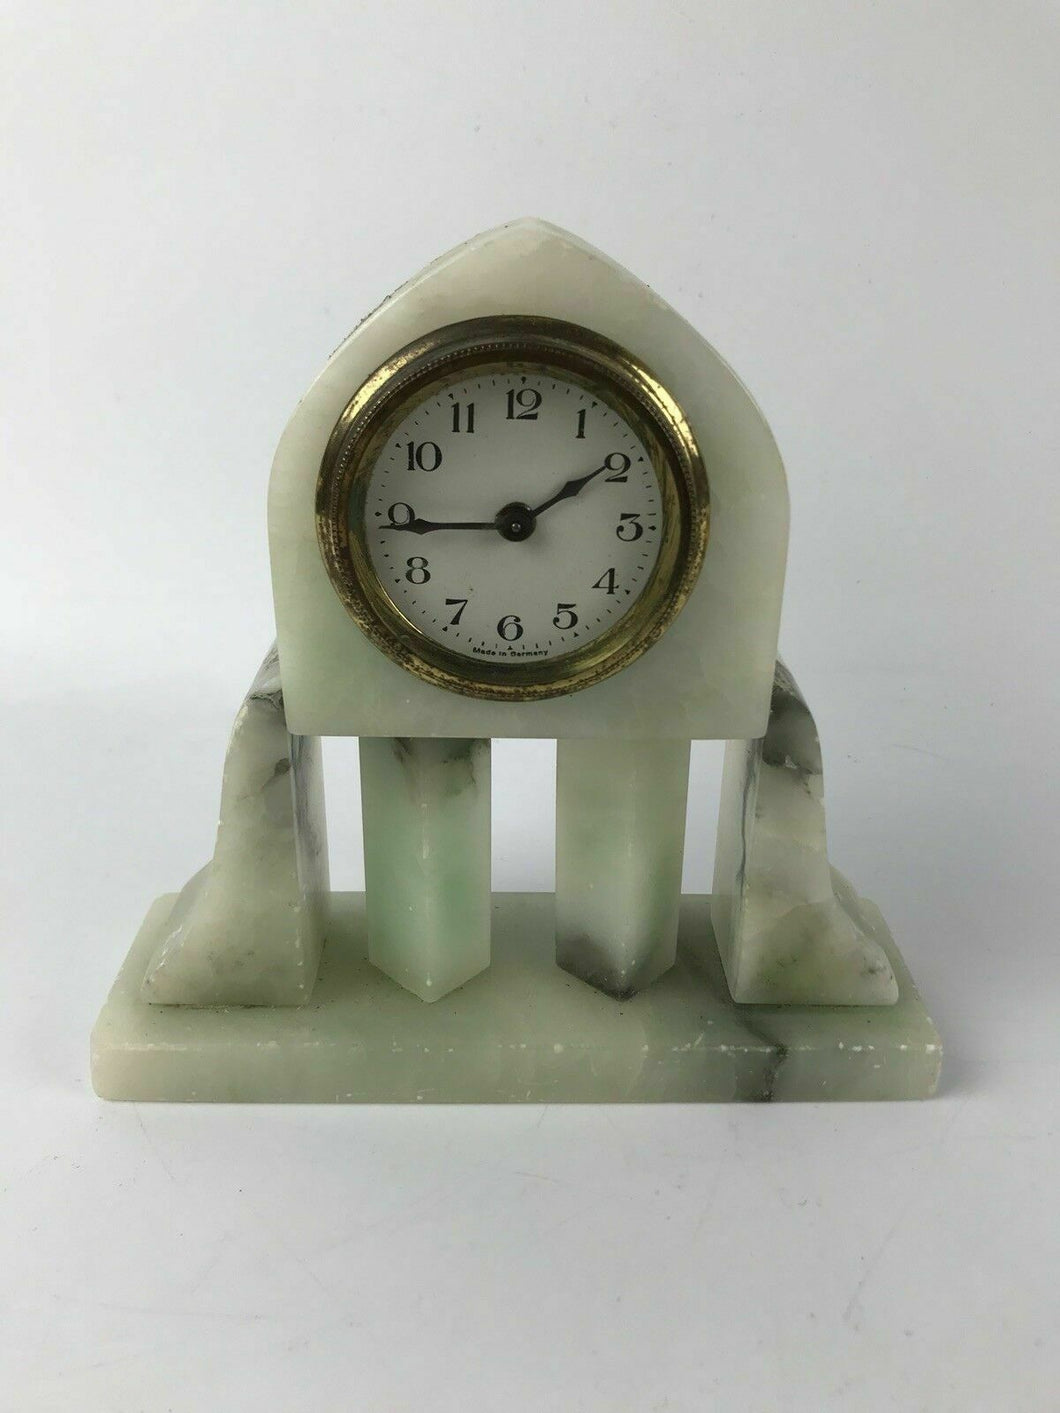 Vintage Desk/Mantel Full Marble Clock Made in Germany - Works #1524